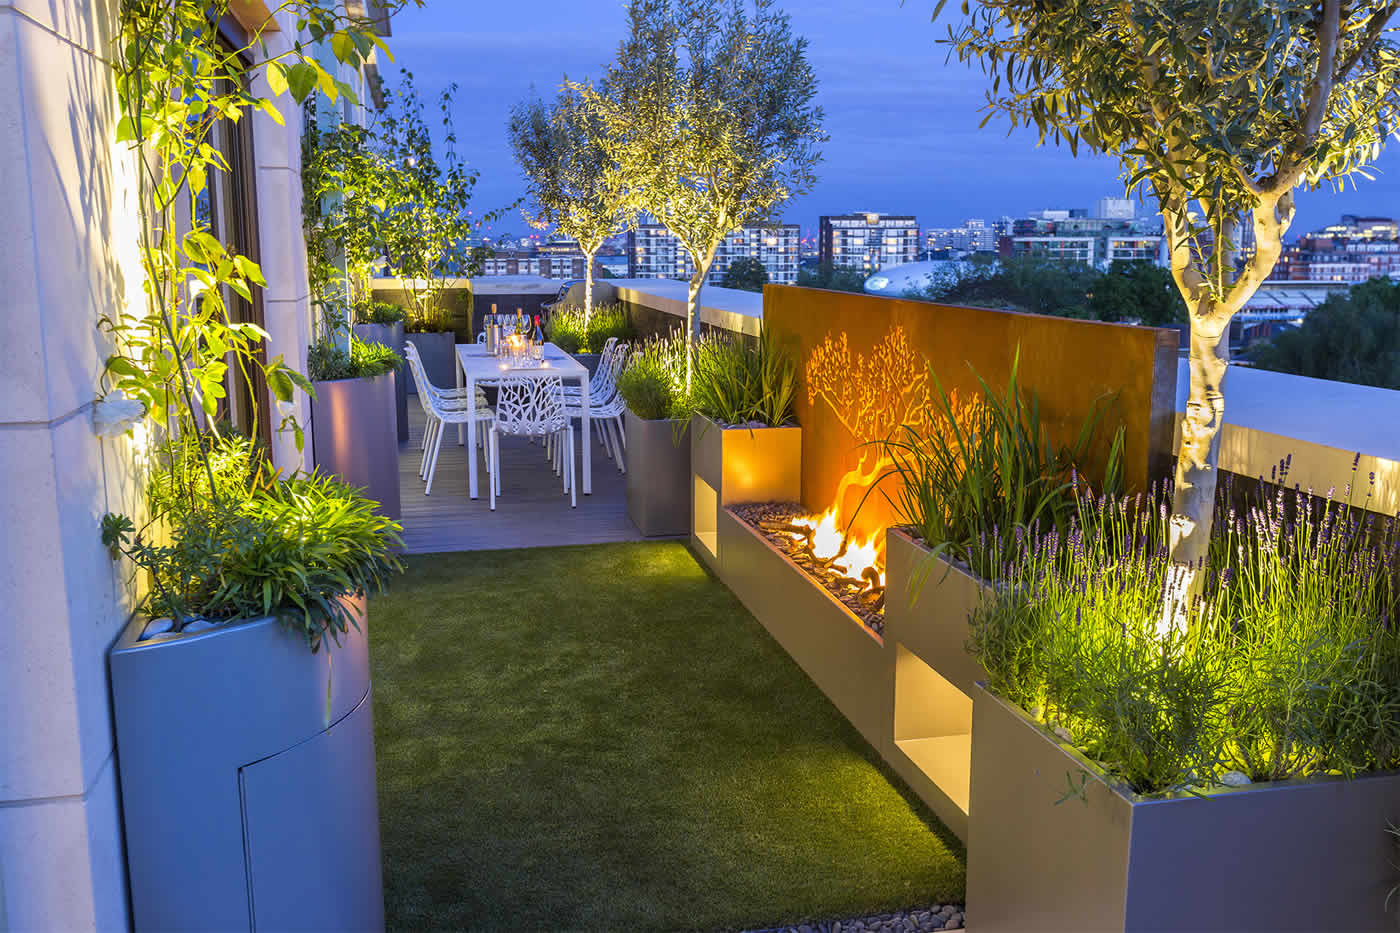 Roof Terrace Design St John's Wood London, By The Garden